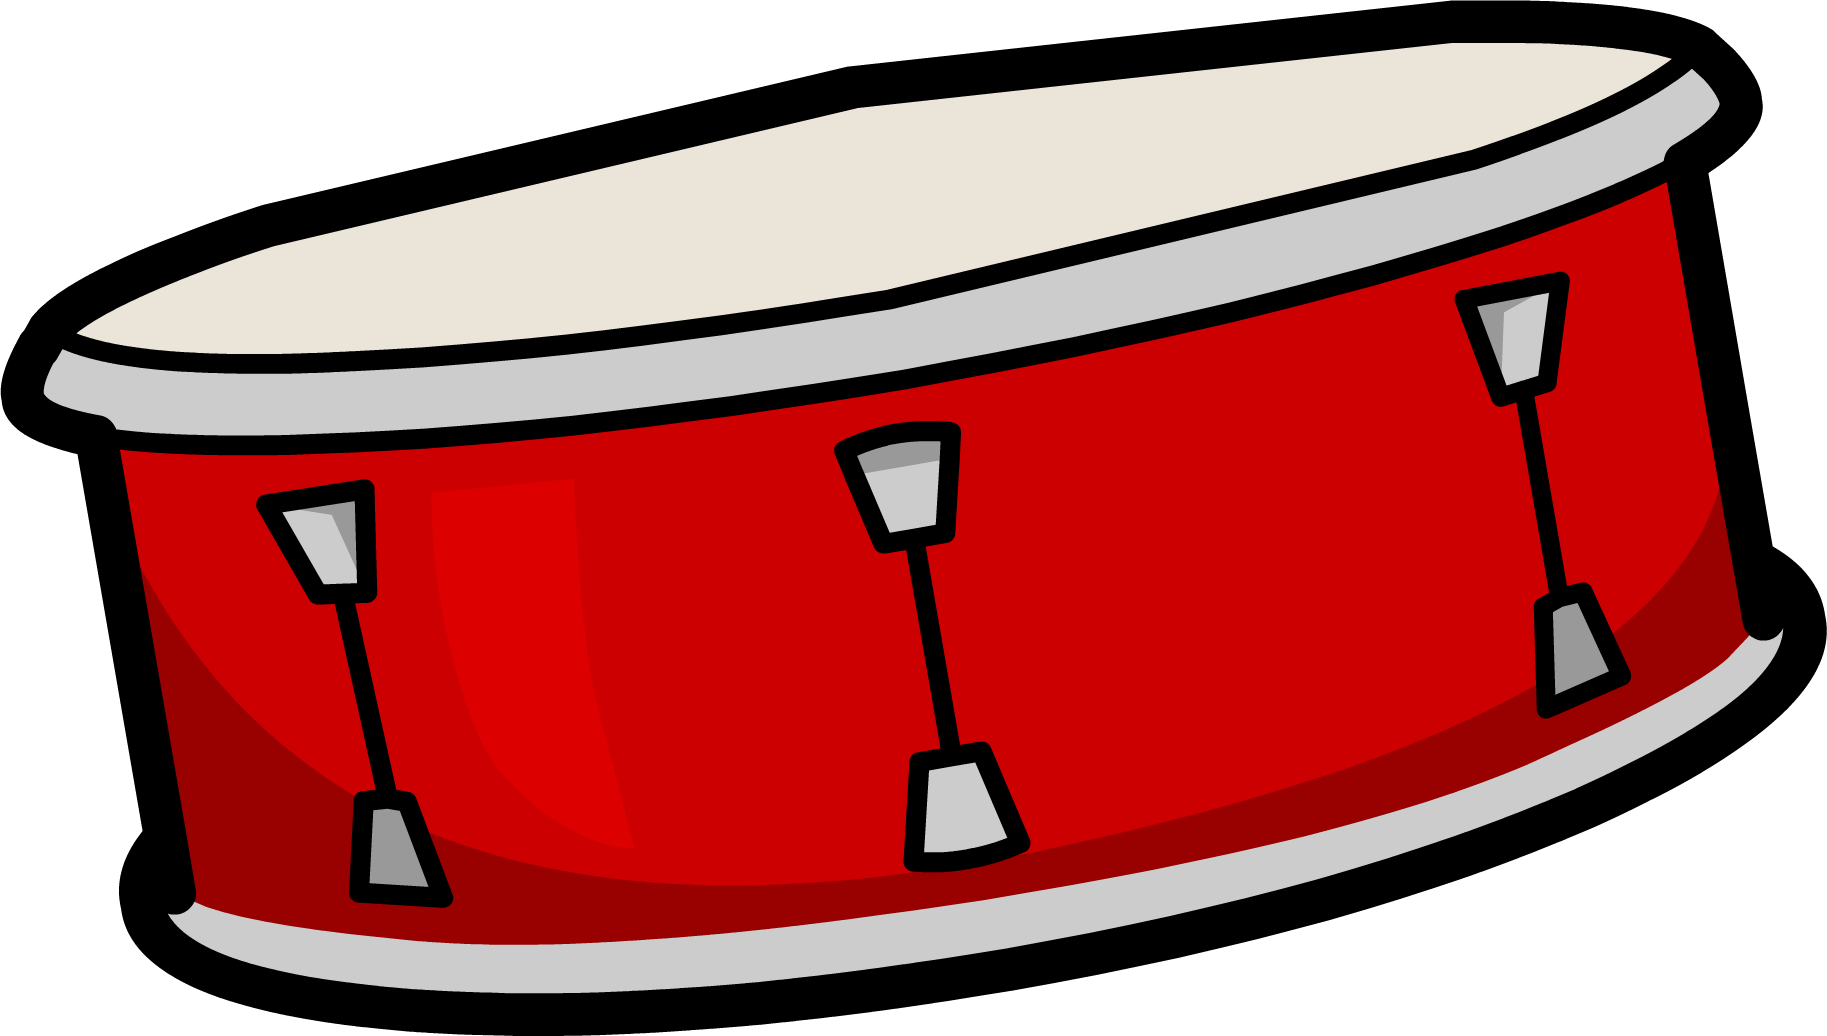 snare drum club penguin wiki fandom powered by wikia